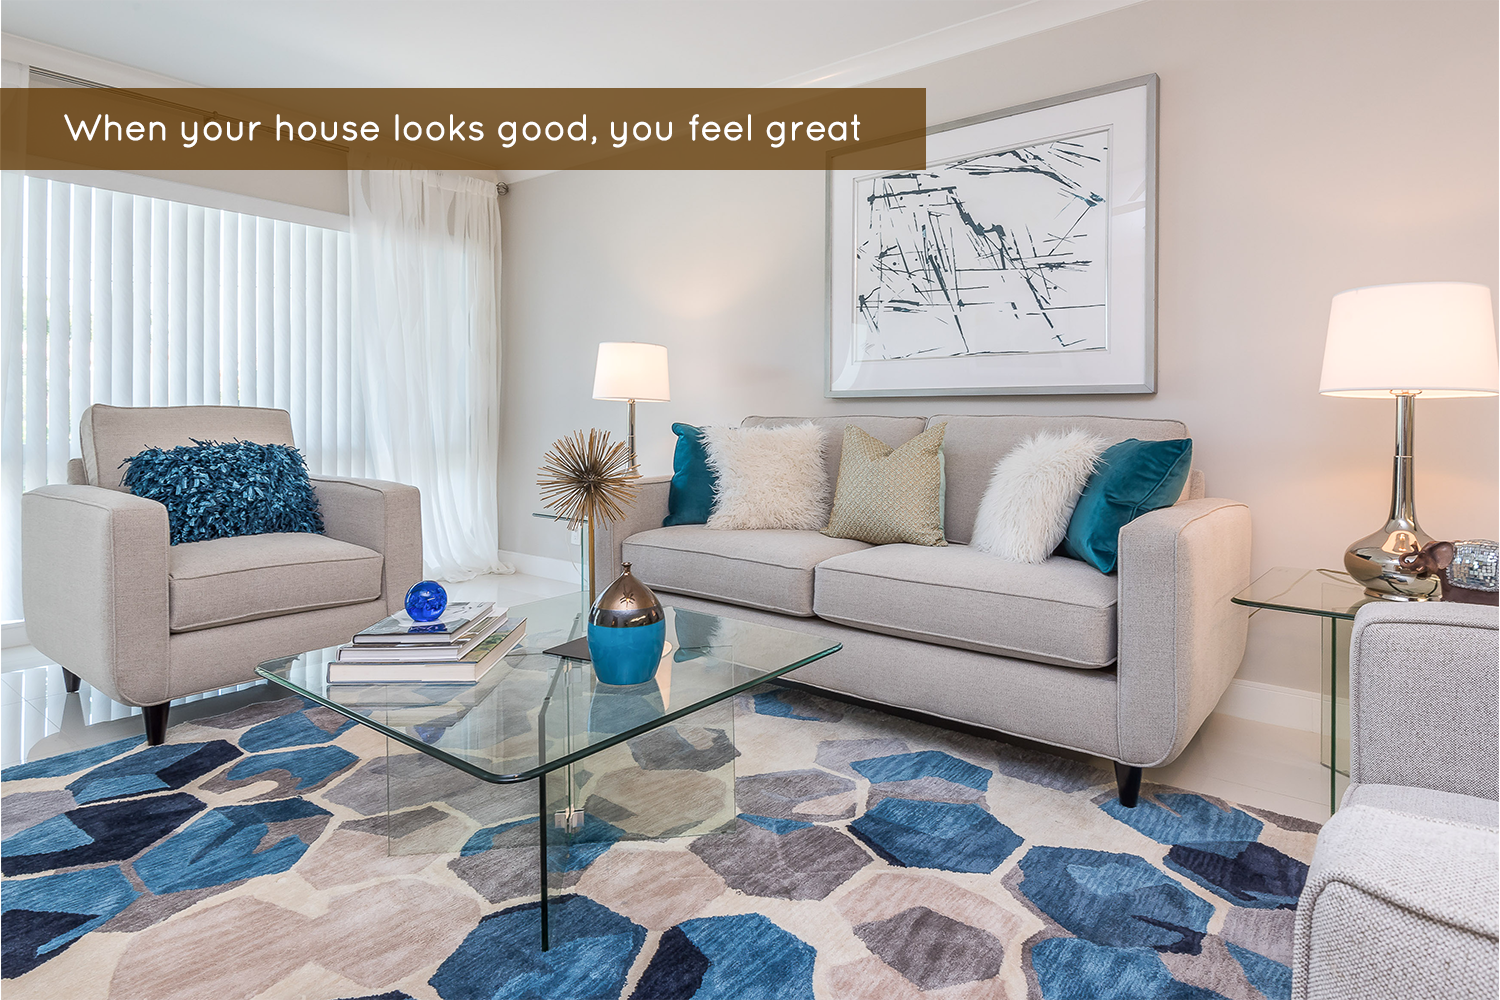 When-your-house-looks-good,-you-feel-great-blue-and-white-living-room-captiva-design-florida-bridget-king-home-slideshow.png